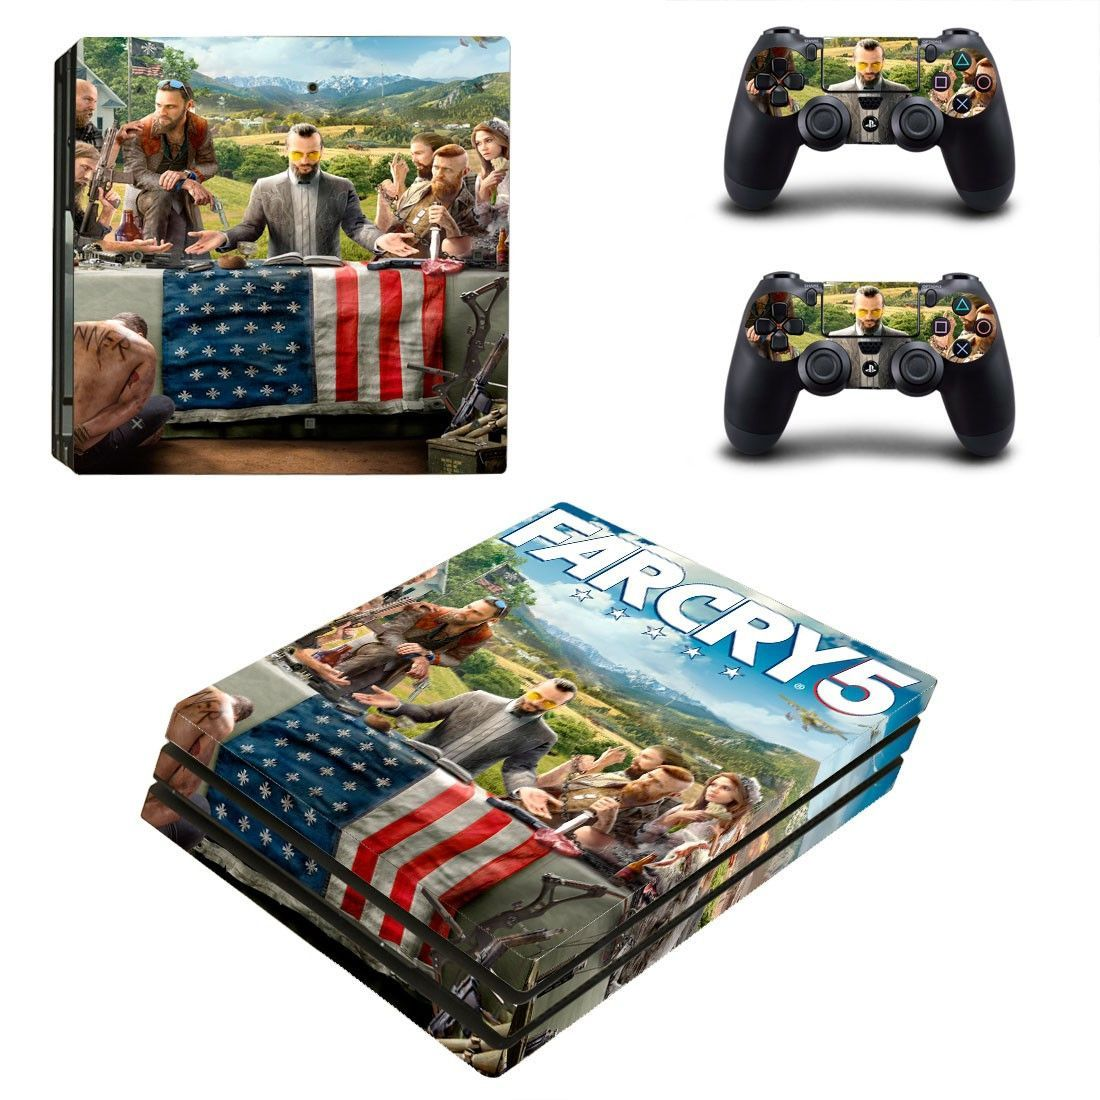 Farcry 5 Ps4 Pro Edition Skin Decal For Console And Controllers